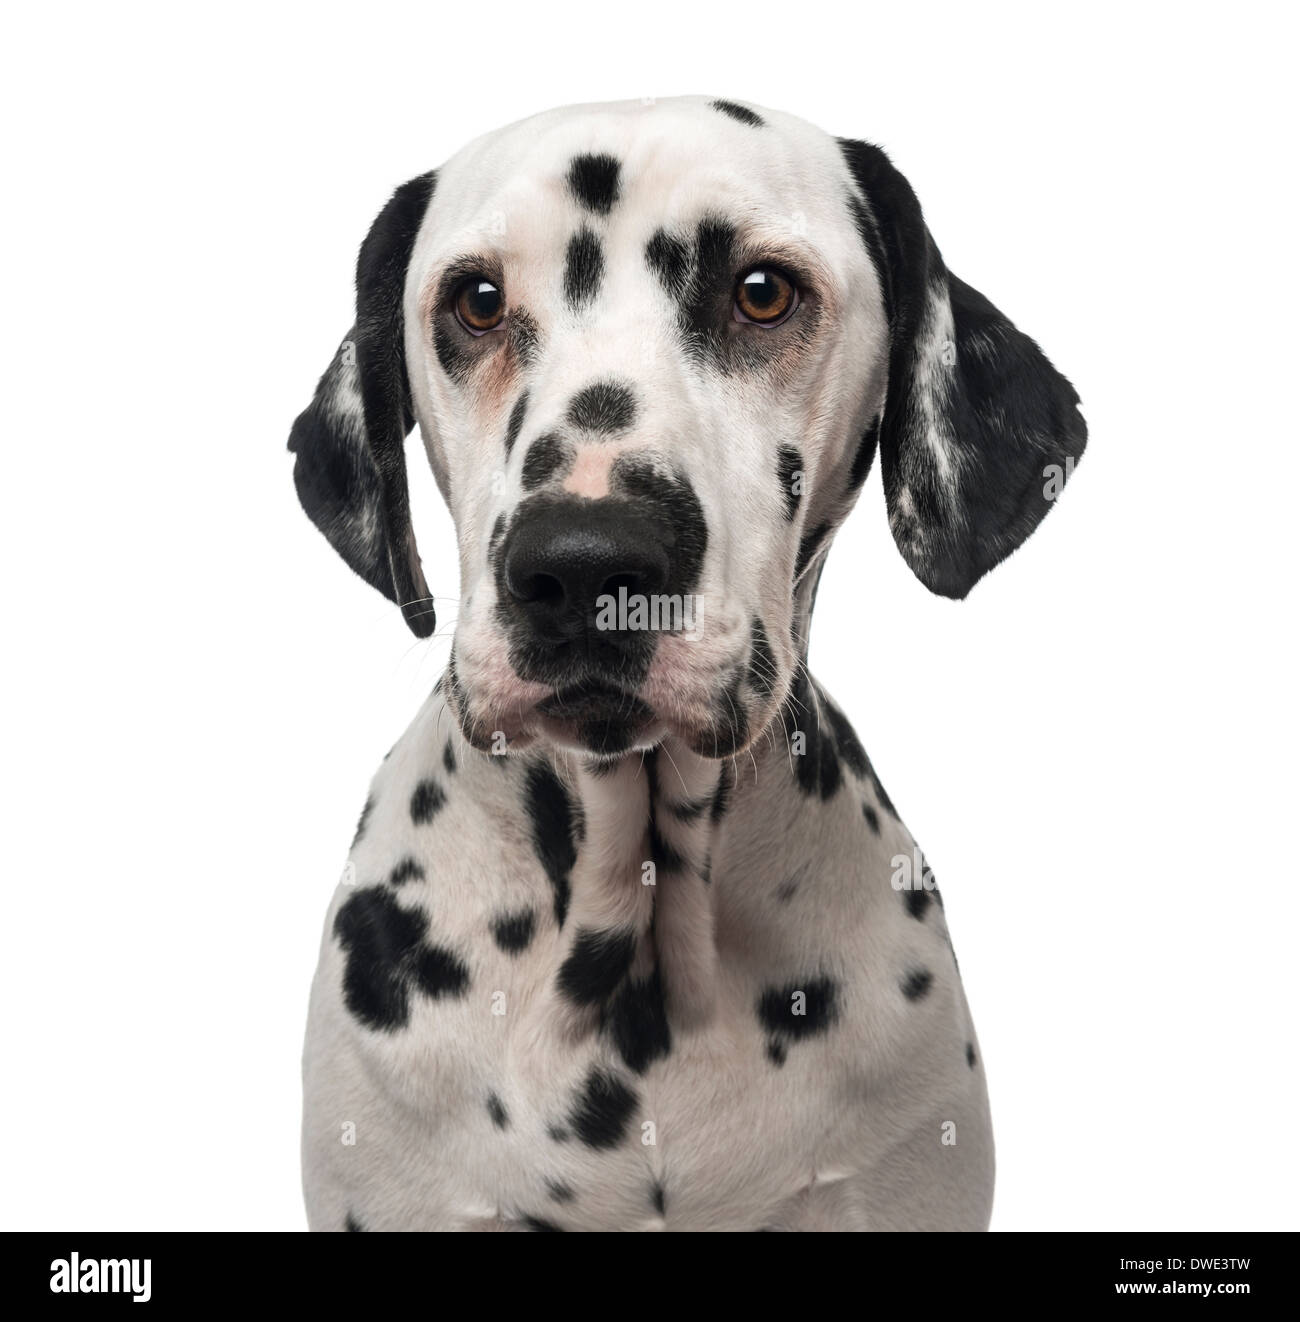 Close-up of a Dalmatian, 1 year old, against white background - Stock Image